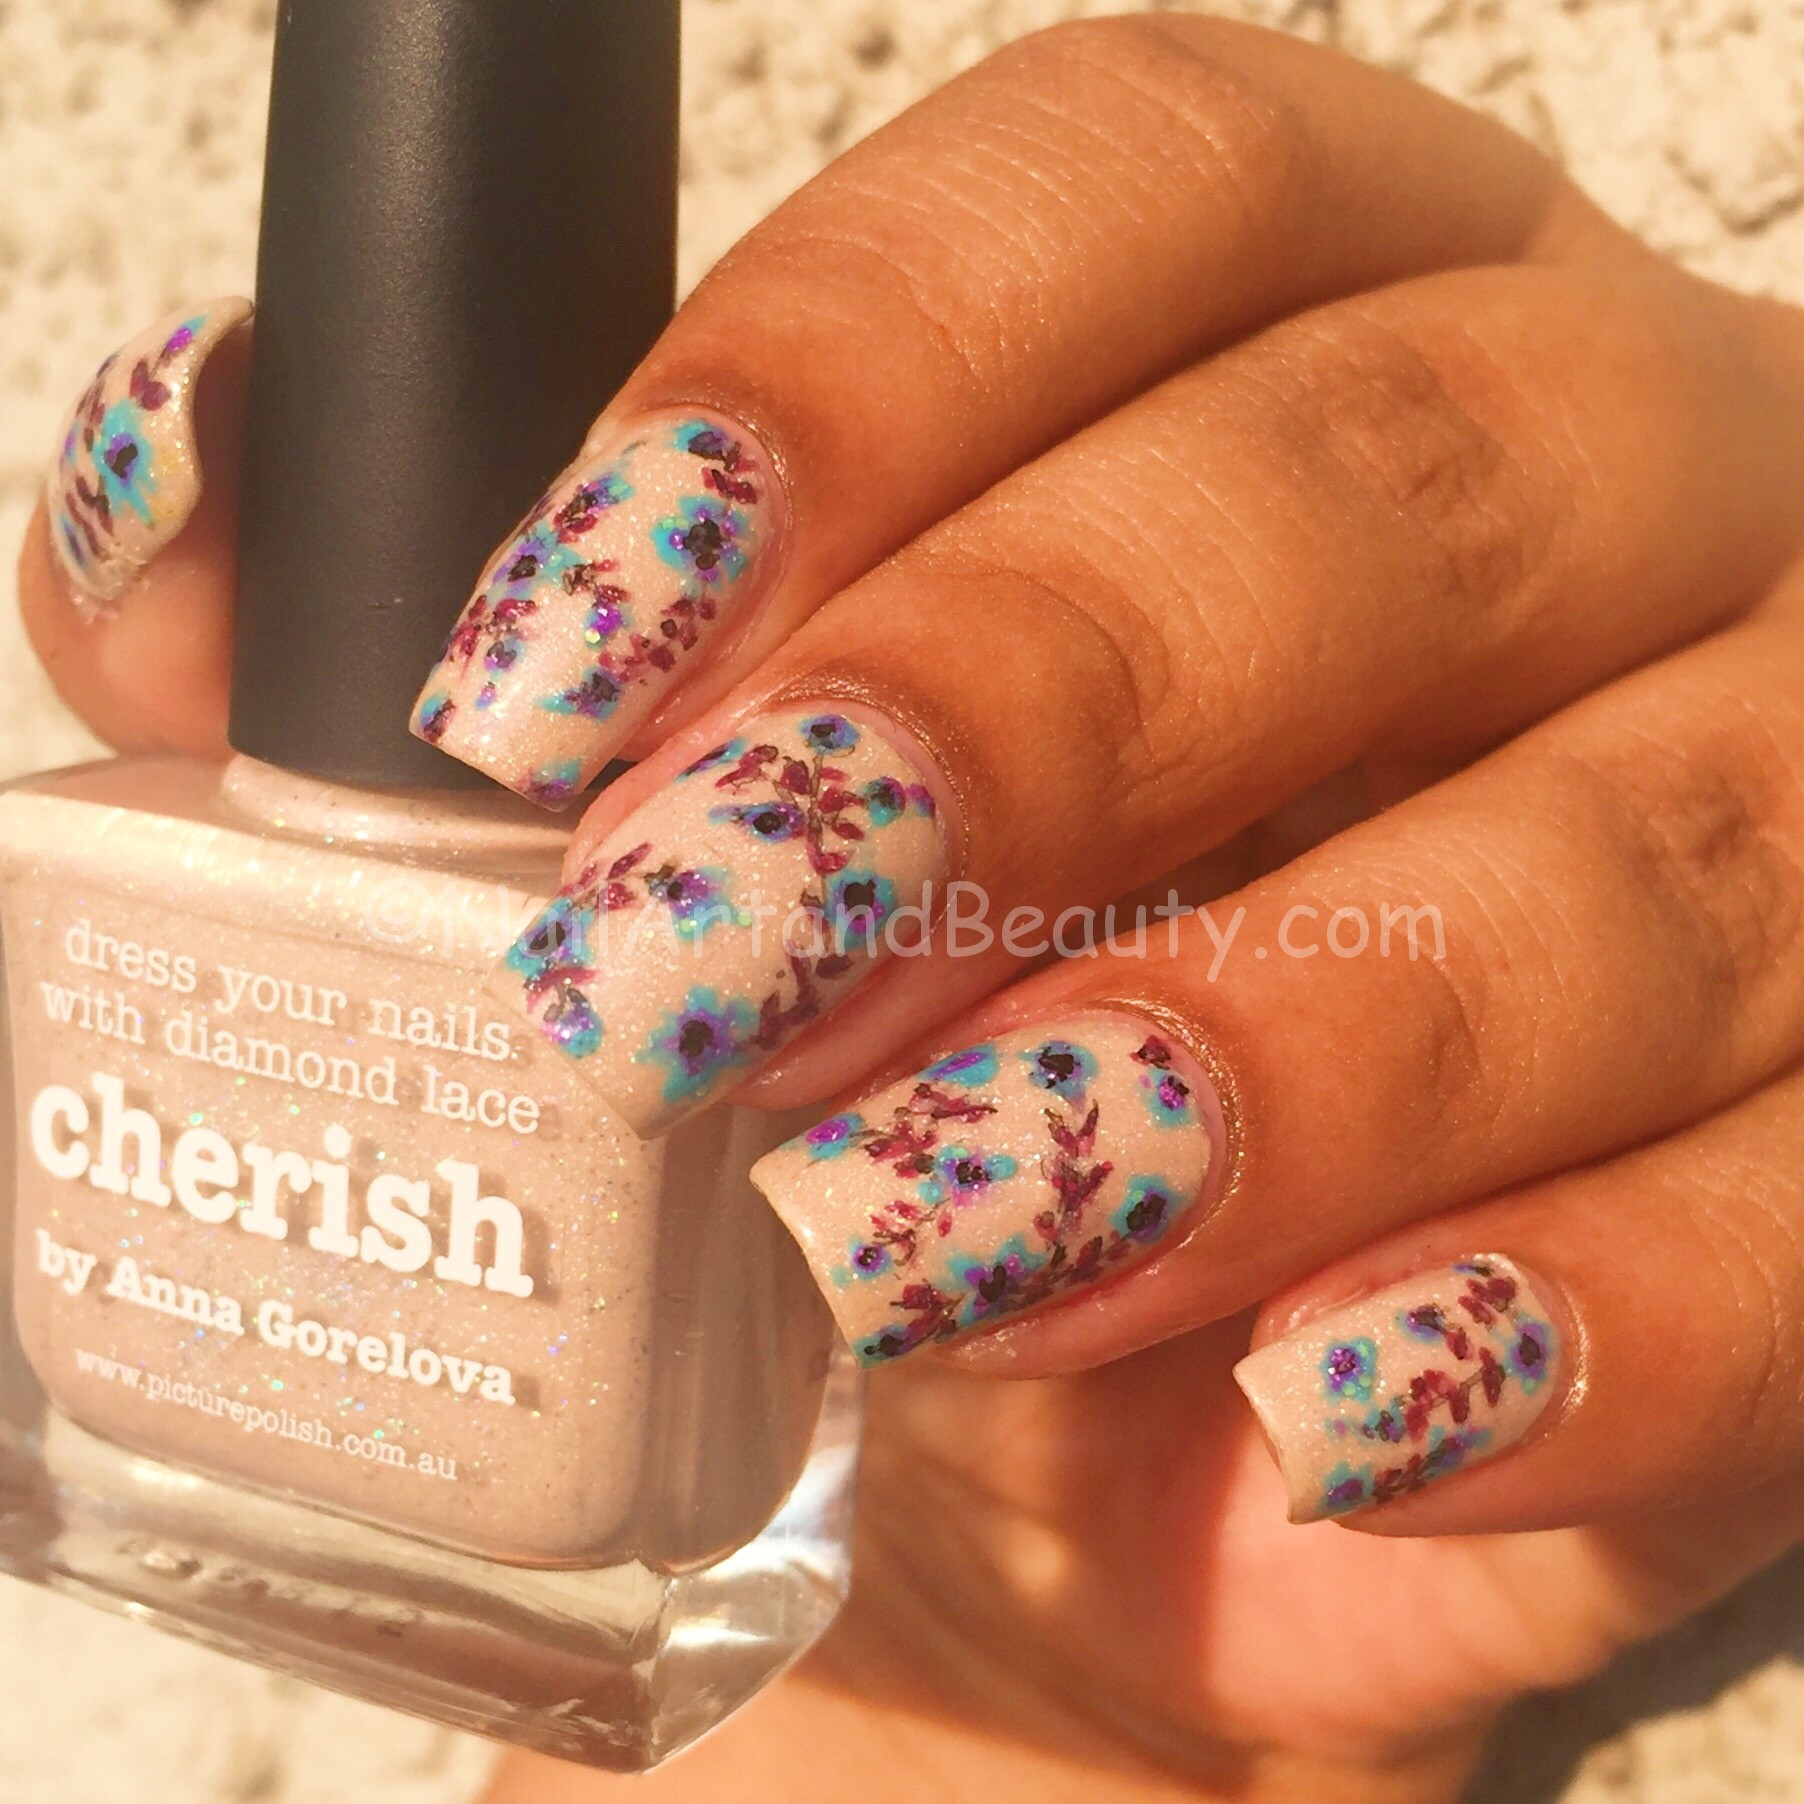 Floral Nails using only Picture Polish